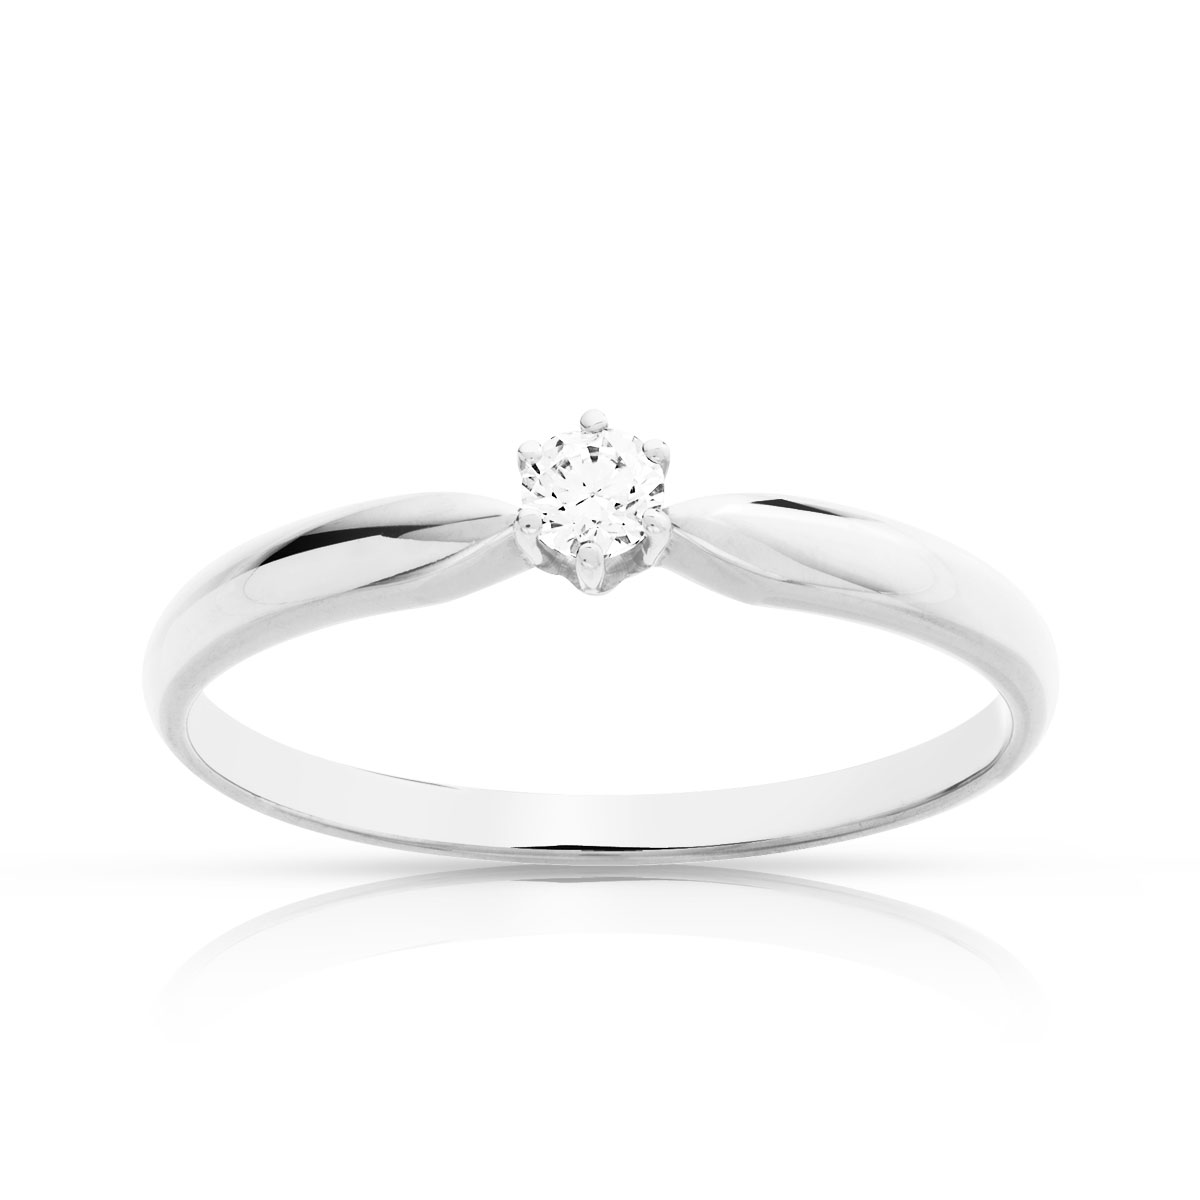 Bague Solitaire or 750 blanc diamant 0.10 ct - vue V1